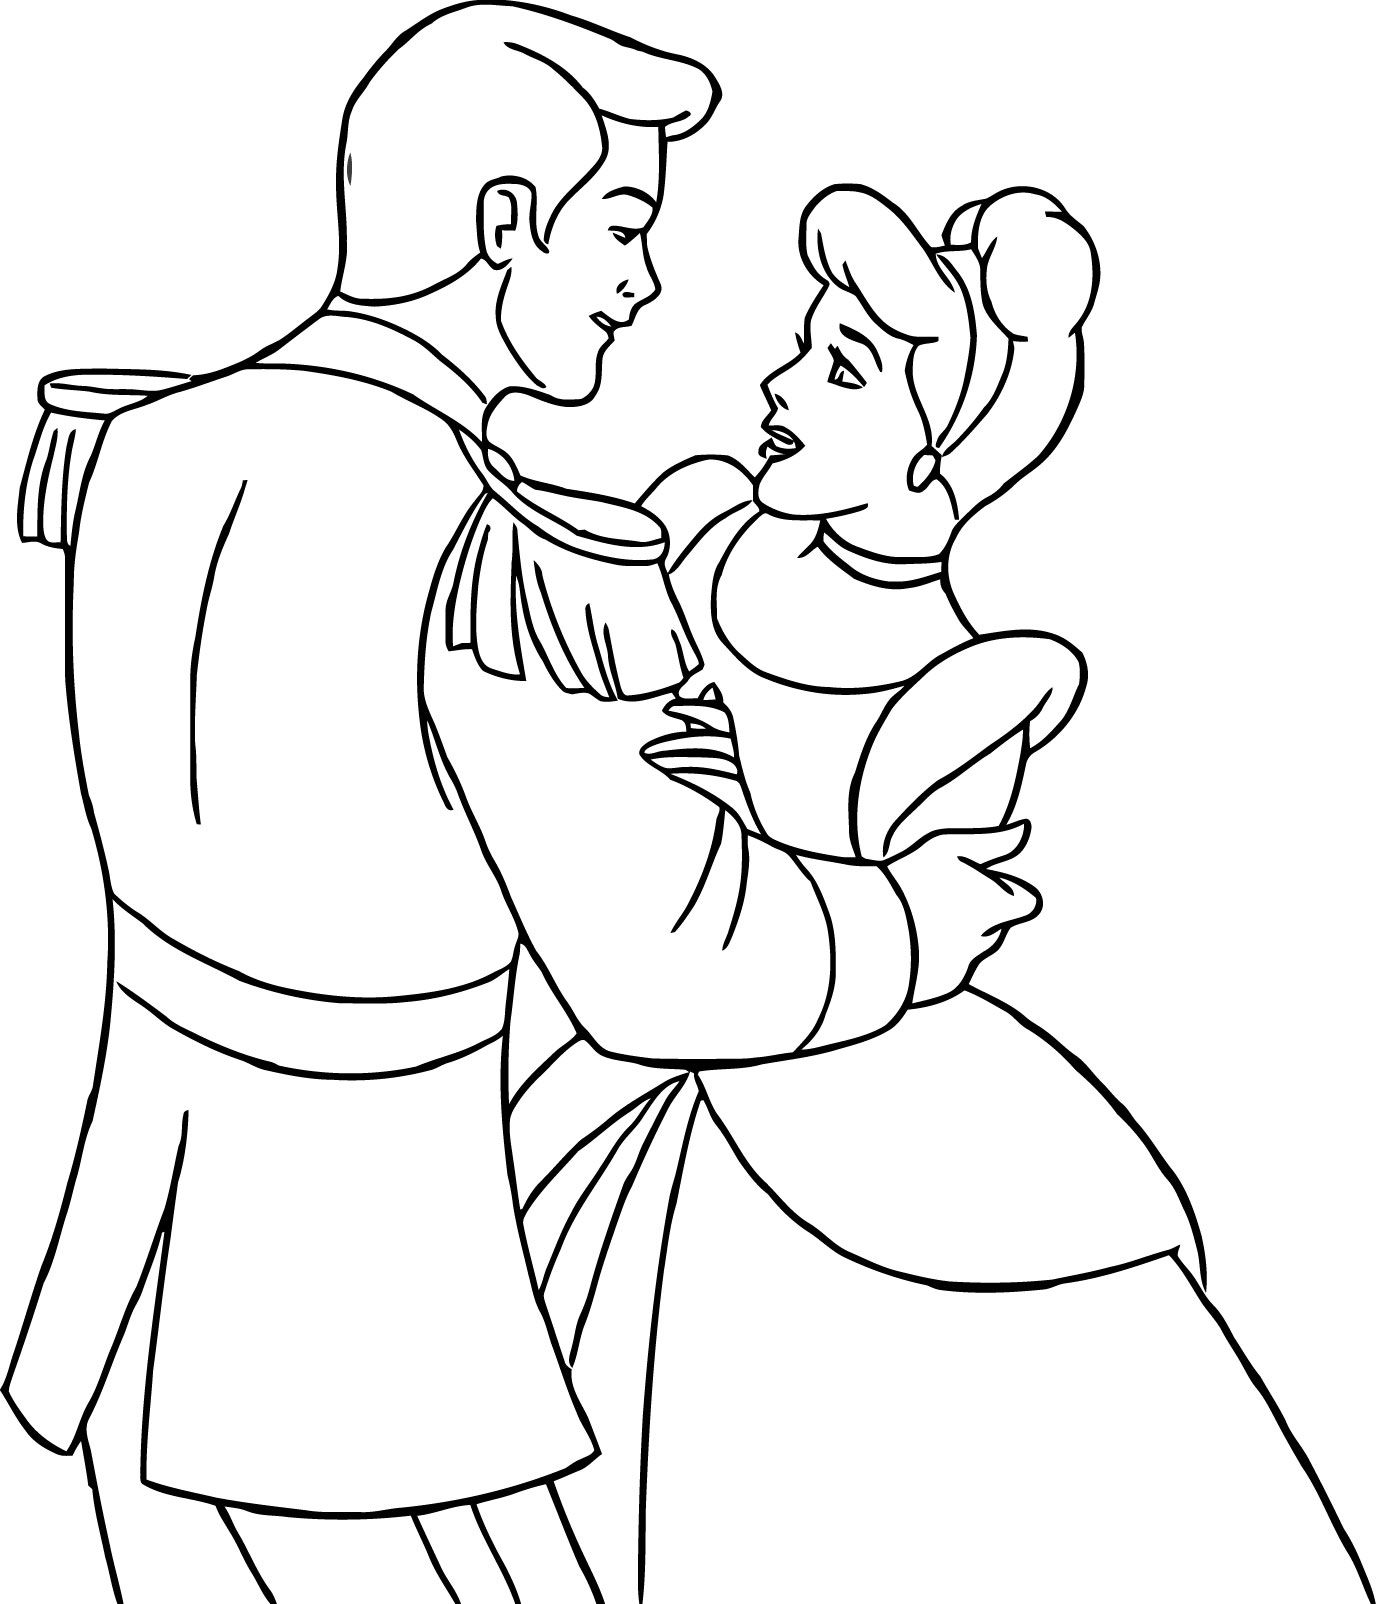 Cinderella Prince Charming Coloring Pages At Getcolorings